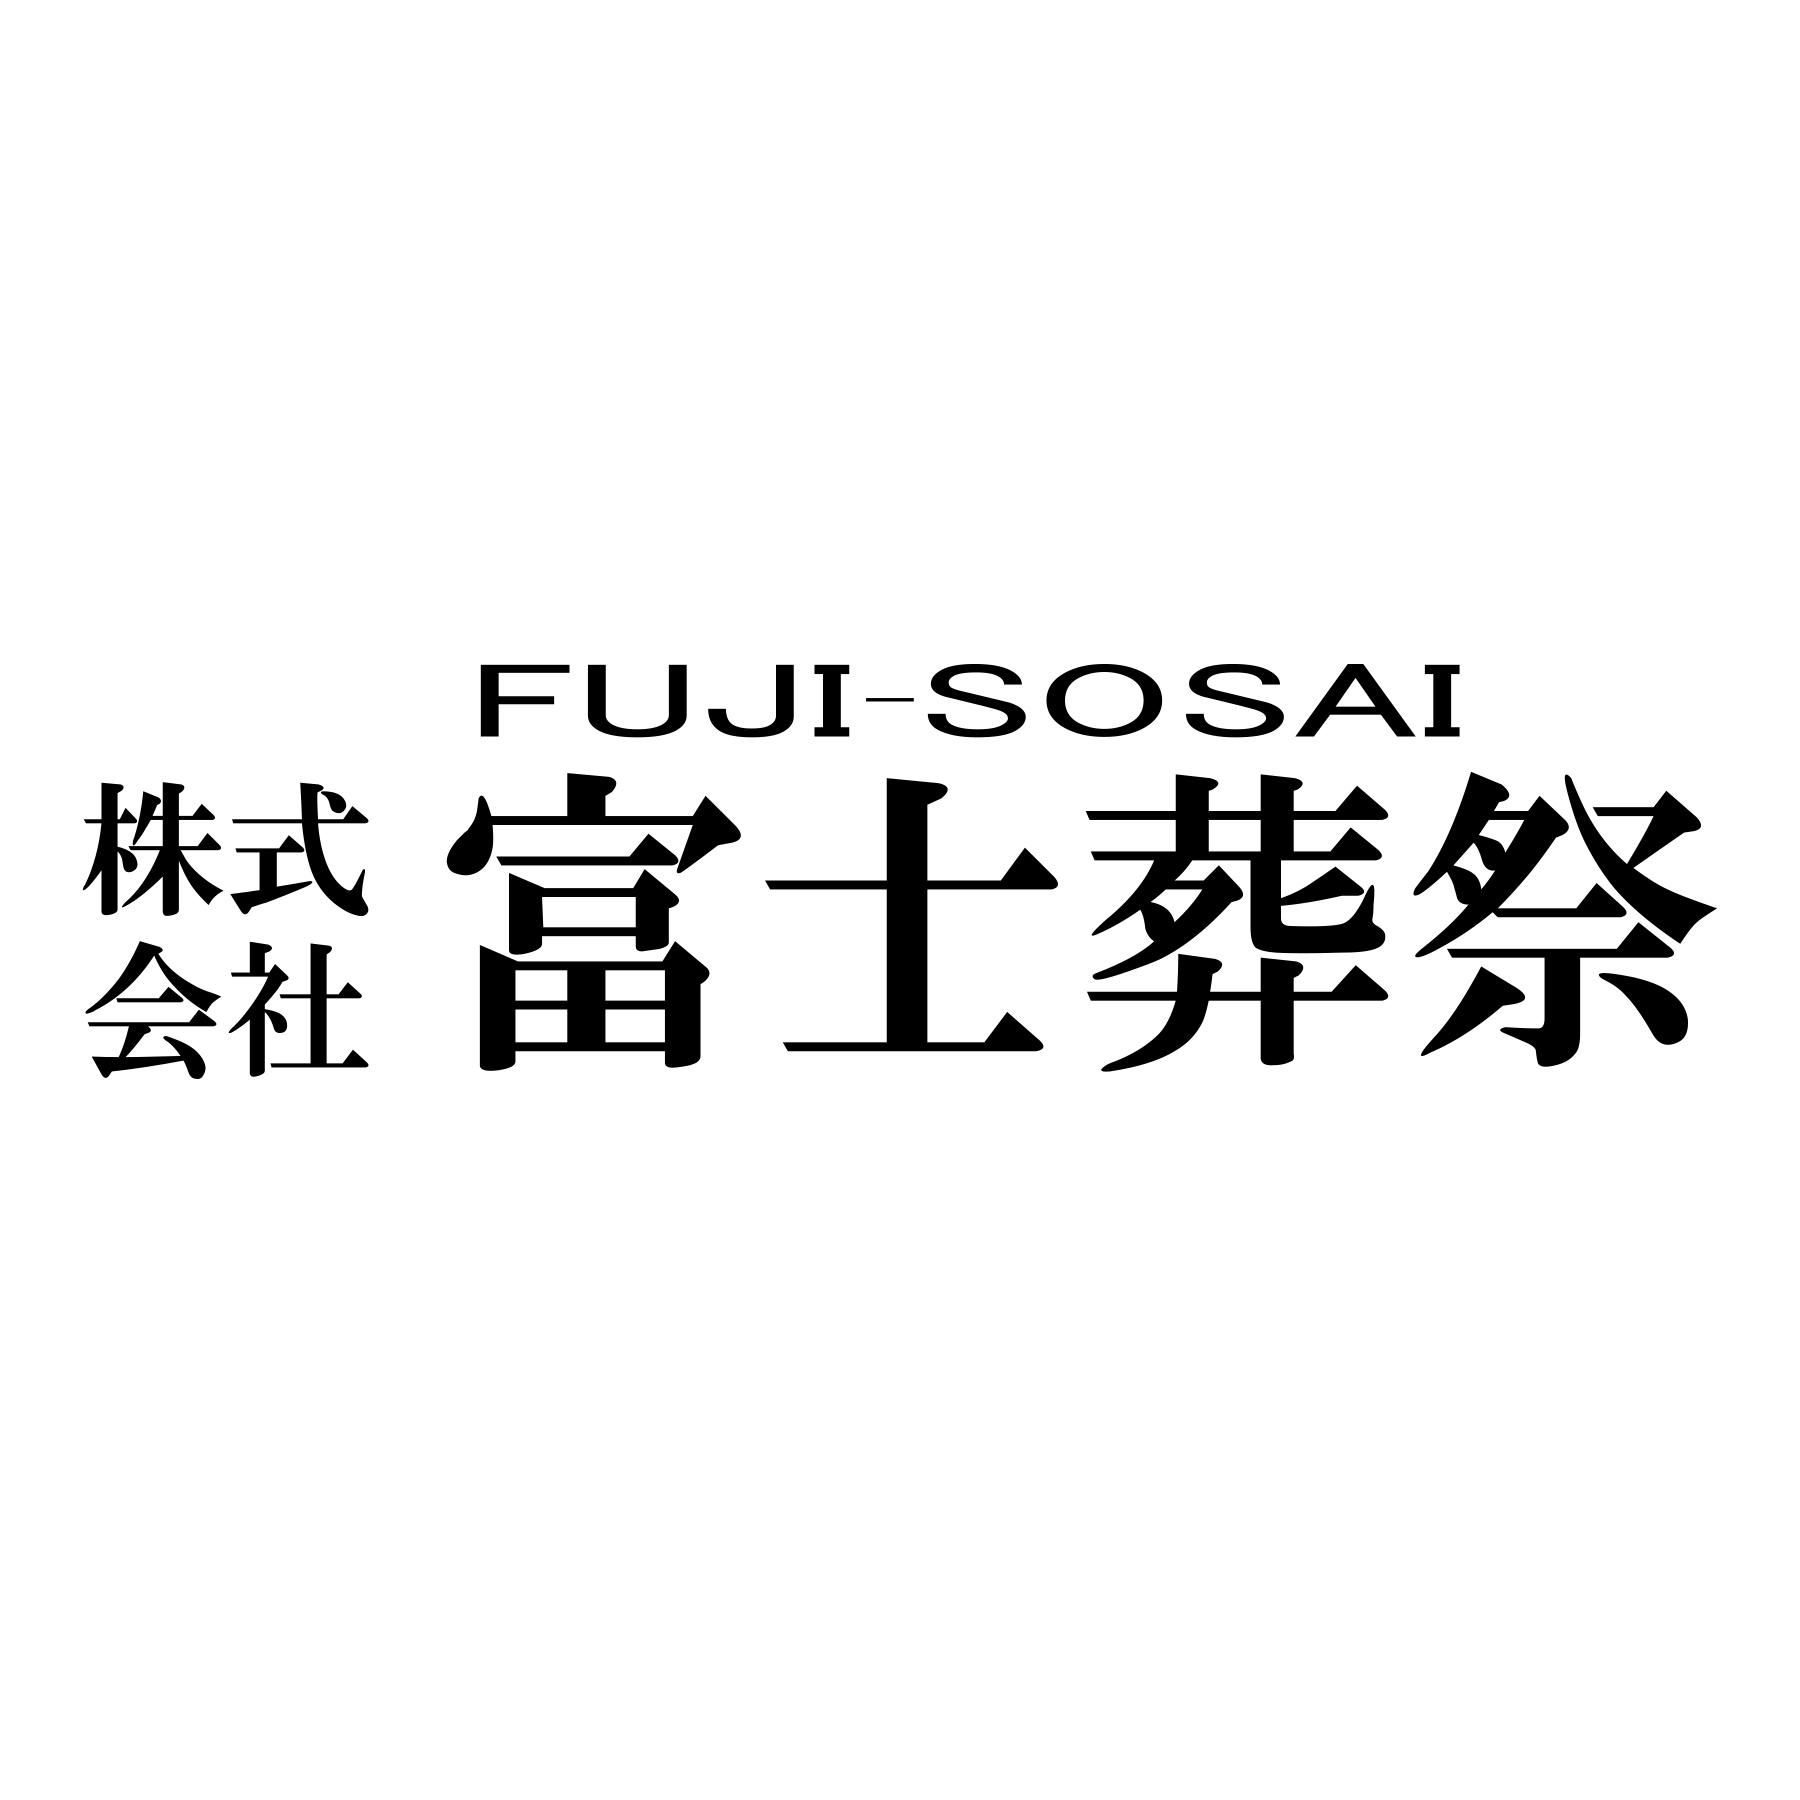 Fuji Sosai Office Funeral Home Operating Company